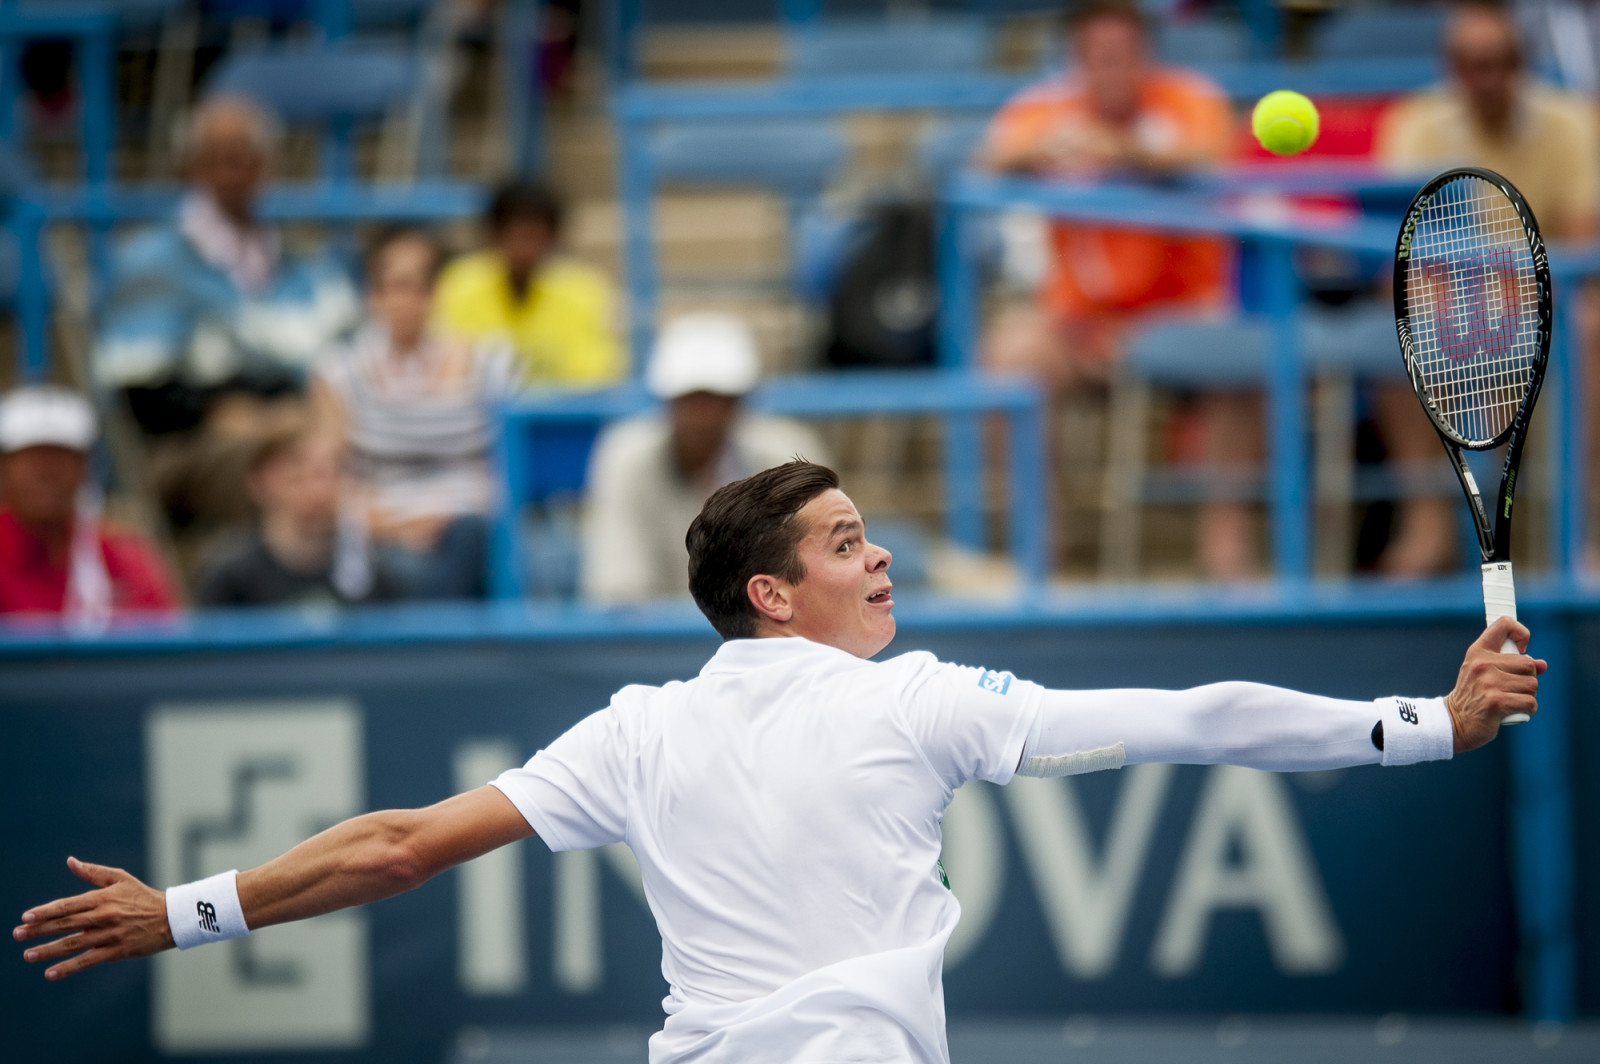 Milos Raonic of Canada returns a shot to Steve Johnson of the United States during their singles match at the Citi Open ATP tennis tournament in Washington, DC, USA, 1 Aug 2014.